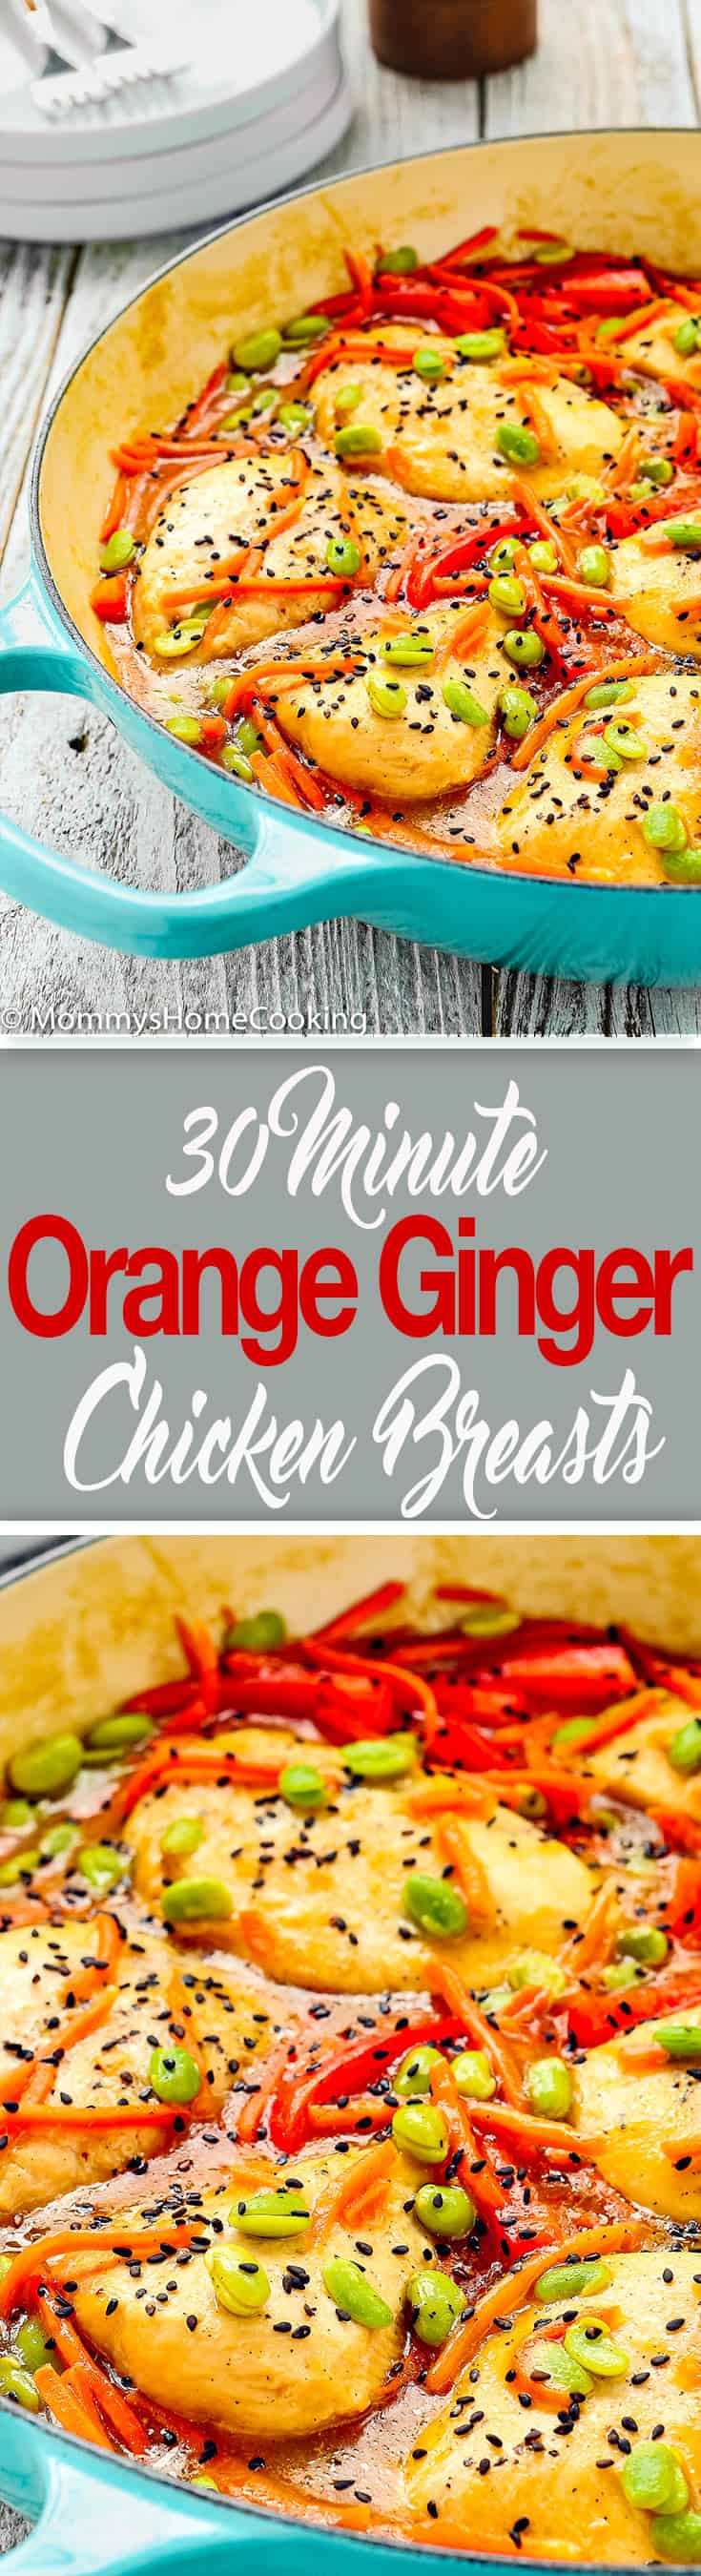 These 30-minute Orange Ginger Chicken Breasts are smothered with a deliciously bright and citrusy orange-ginger sauce. They're a crowd pleasing hit and a fantastic weeknight meal. http://mommyshomecooking